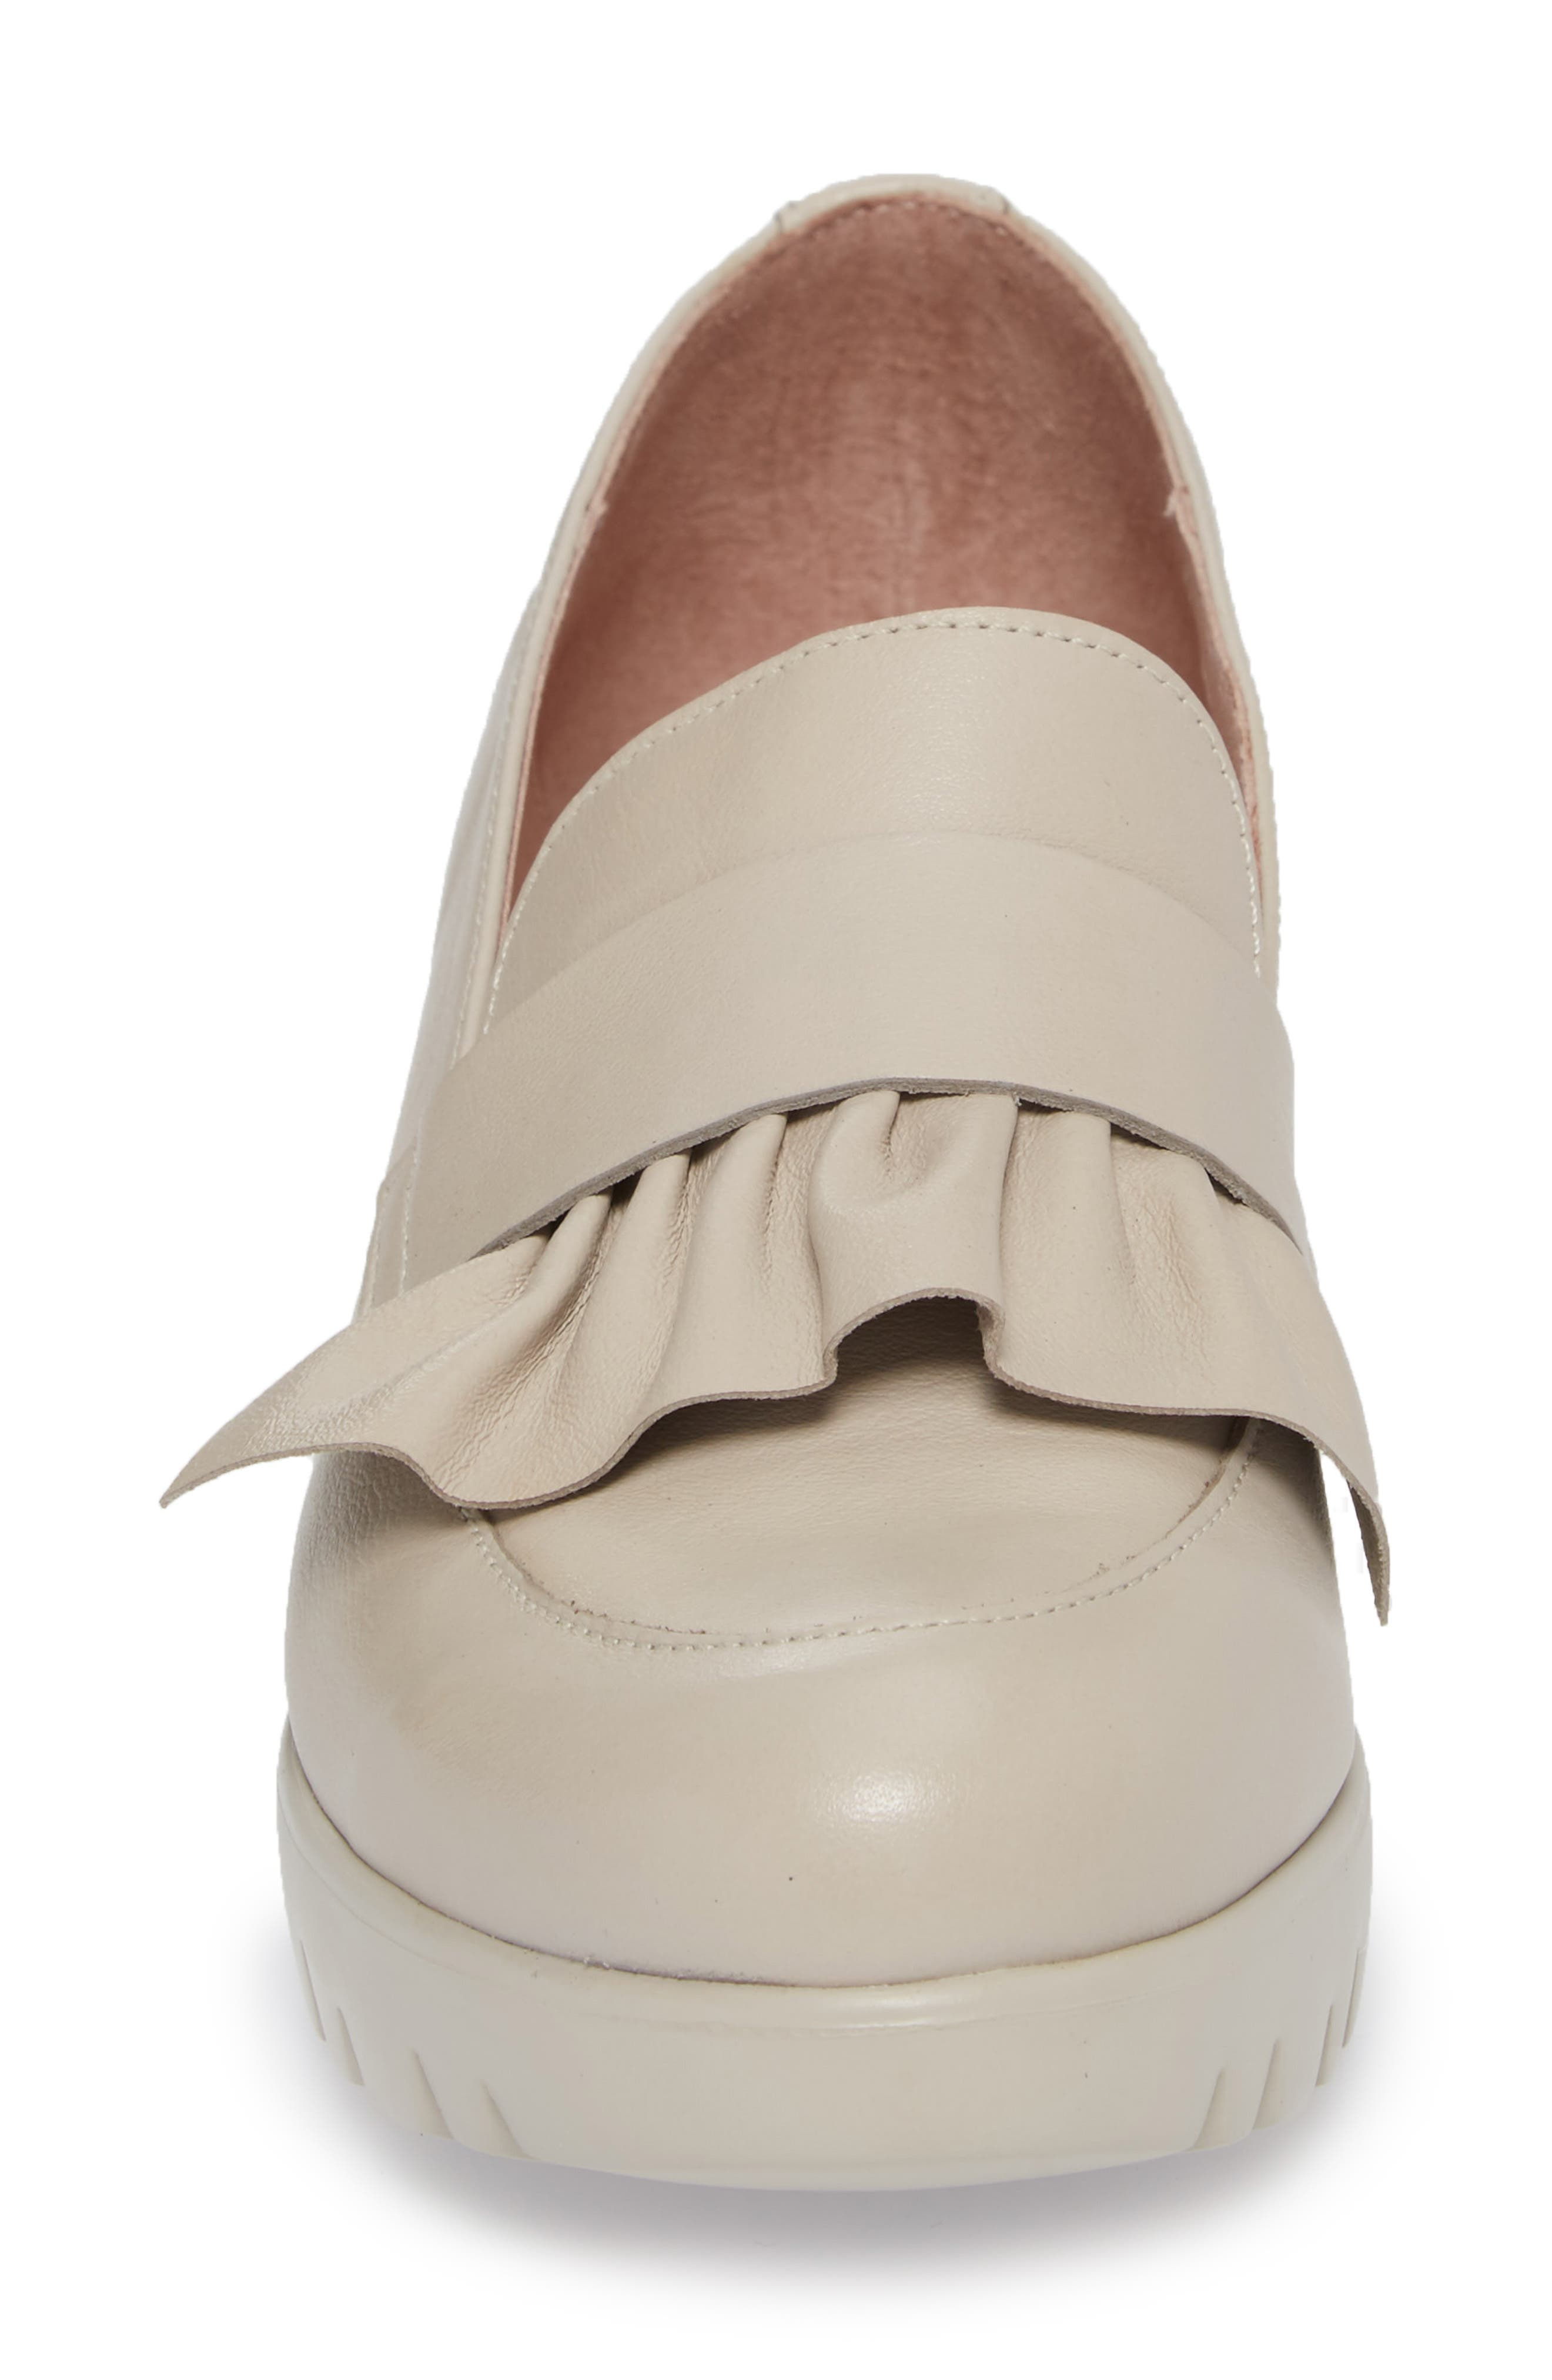 Loafer Wedge,                             Alternate thumbnail 4, color,                             LIGHT GREY LEATHER